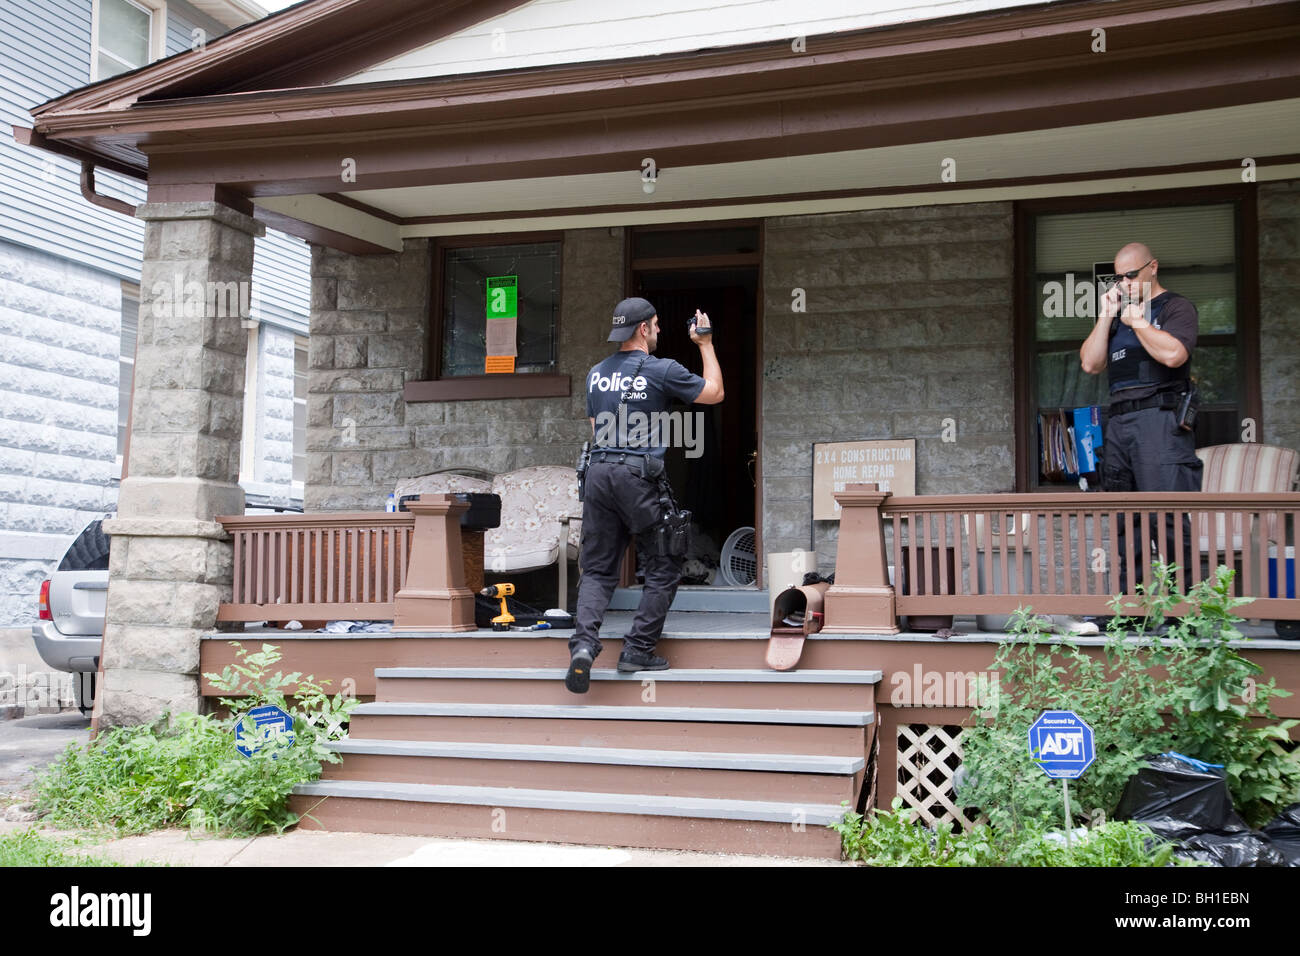 Police officer video-taping residence after search warrant. Done to document any damage caused by forced entry, - Stock Image